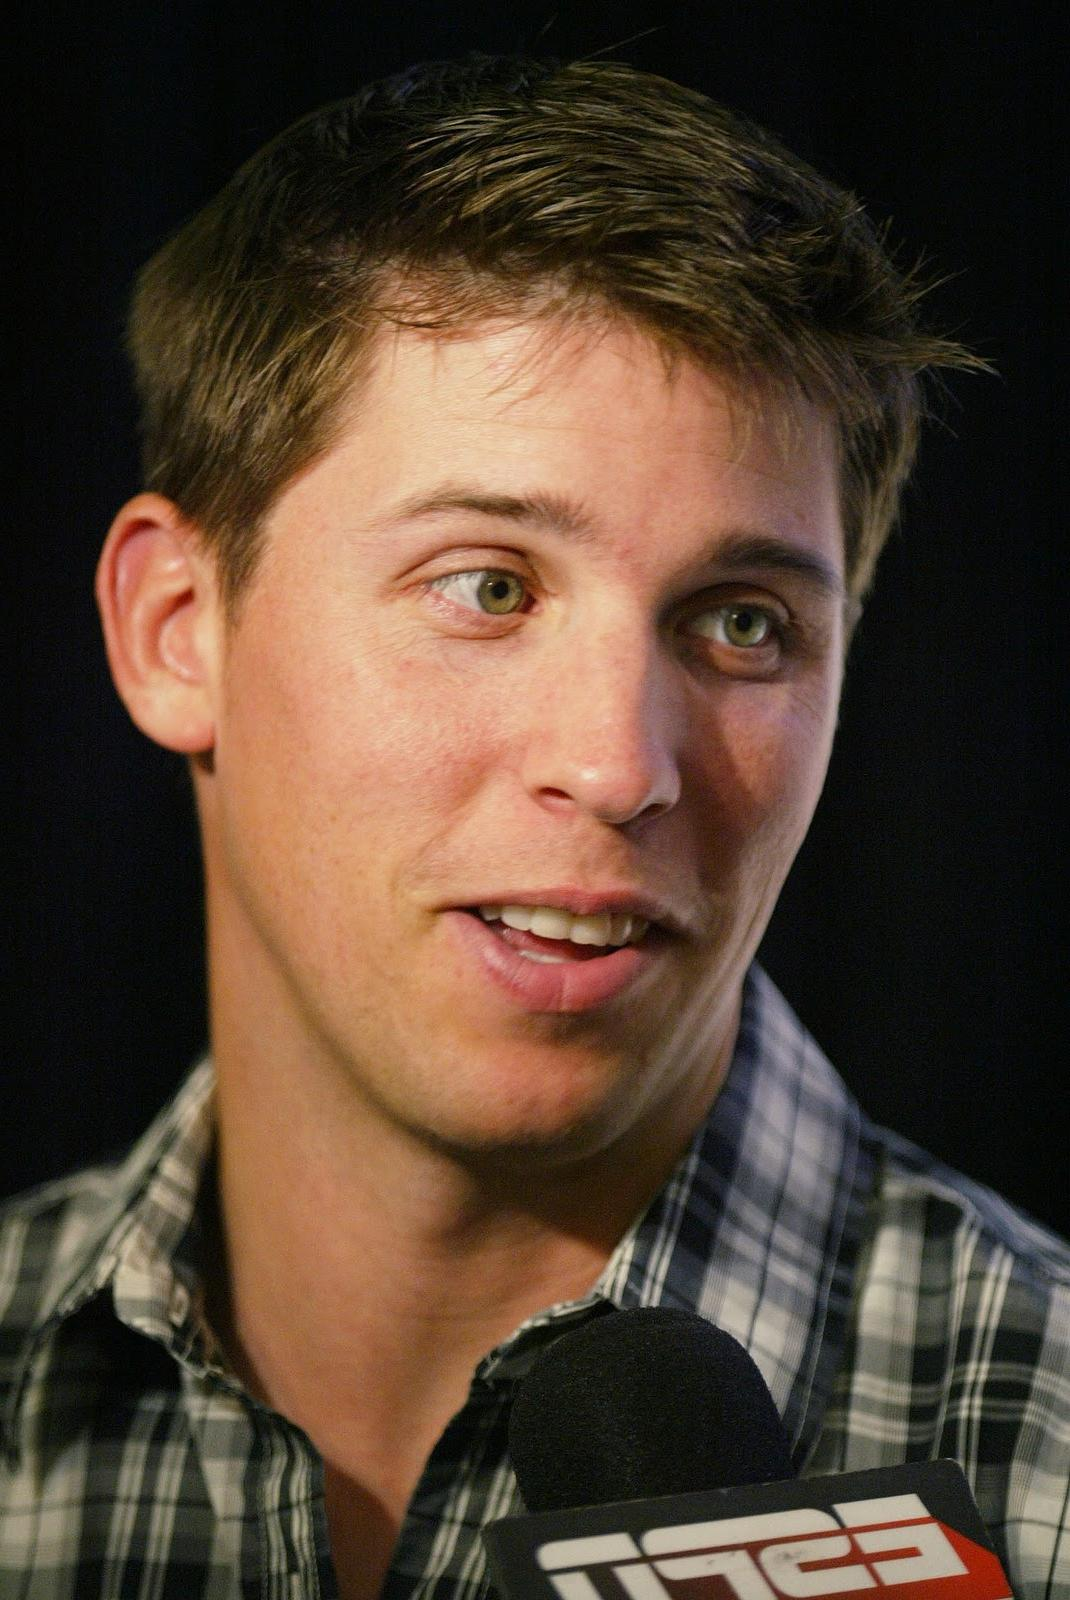 It appears that Denny Hamlin